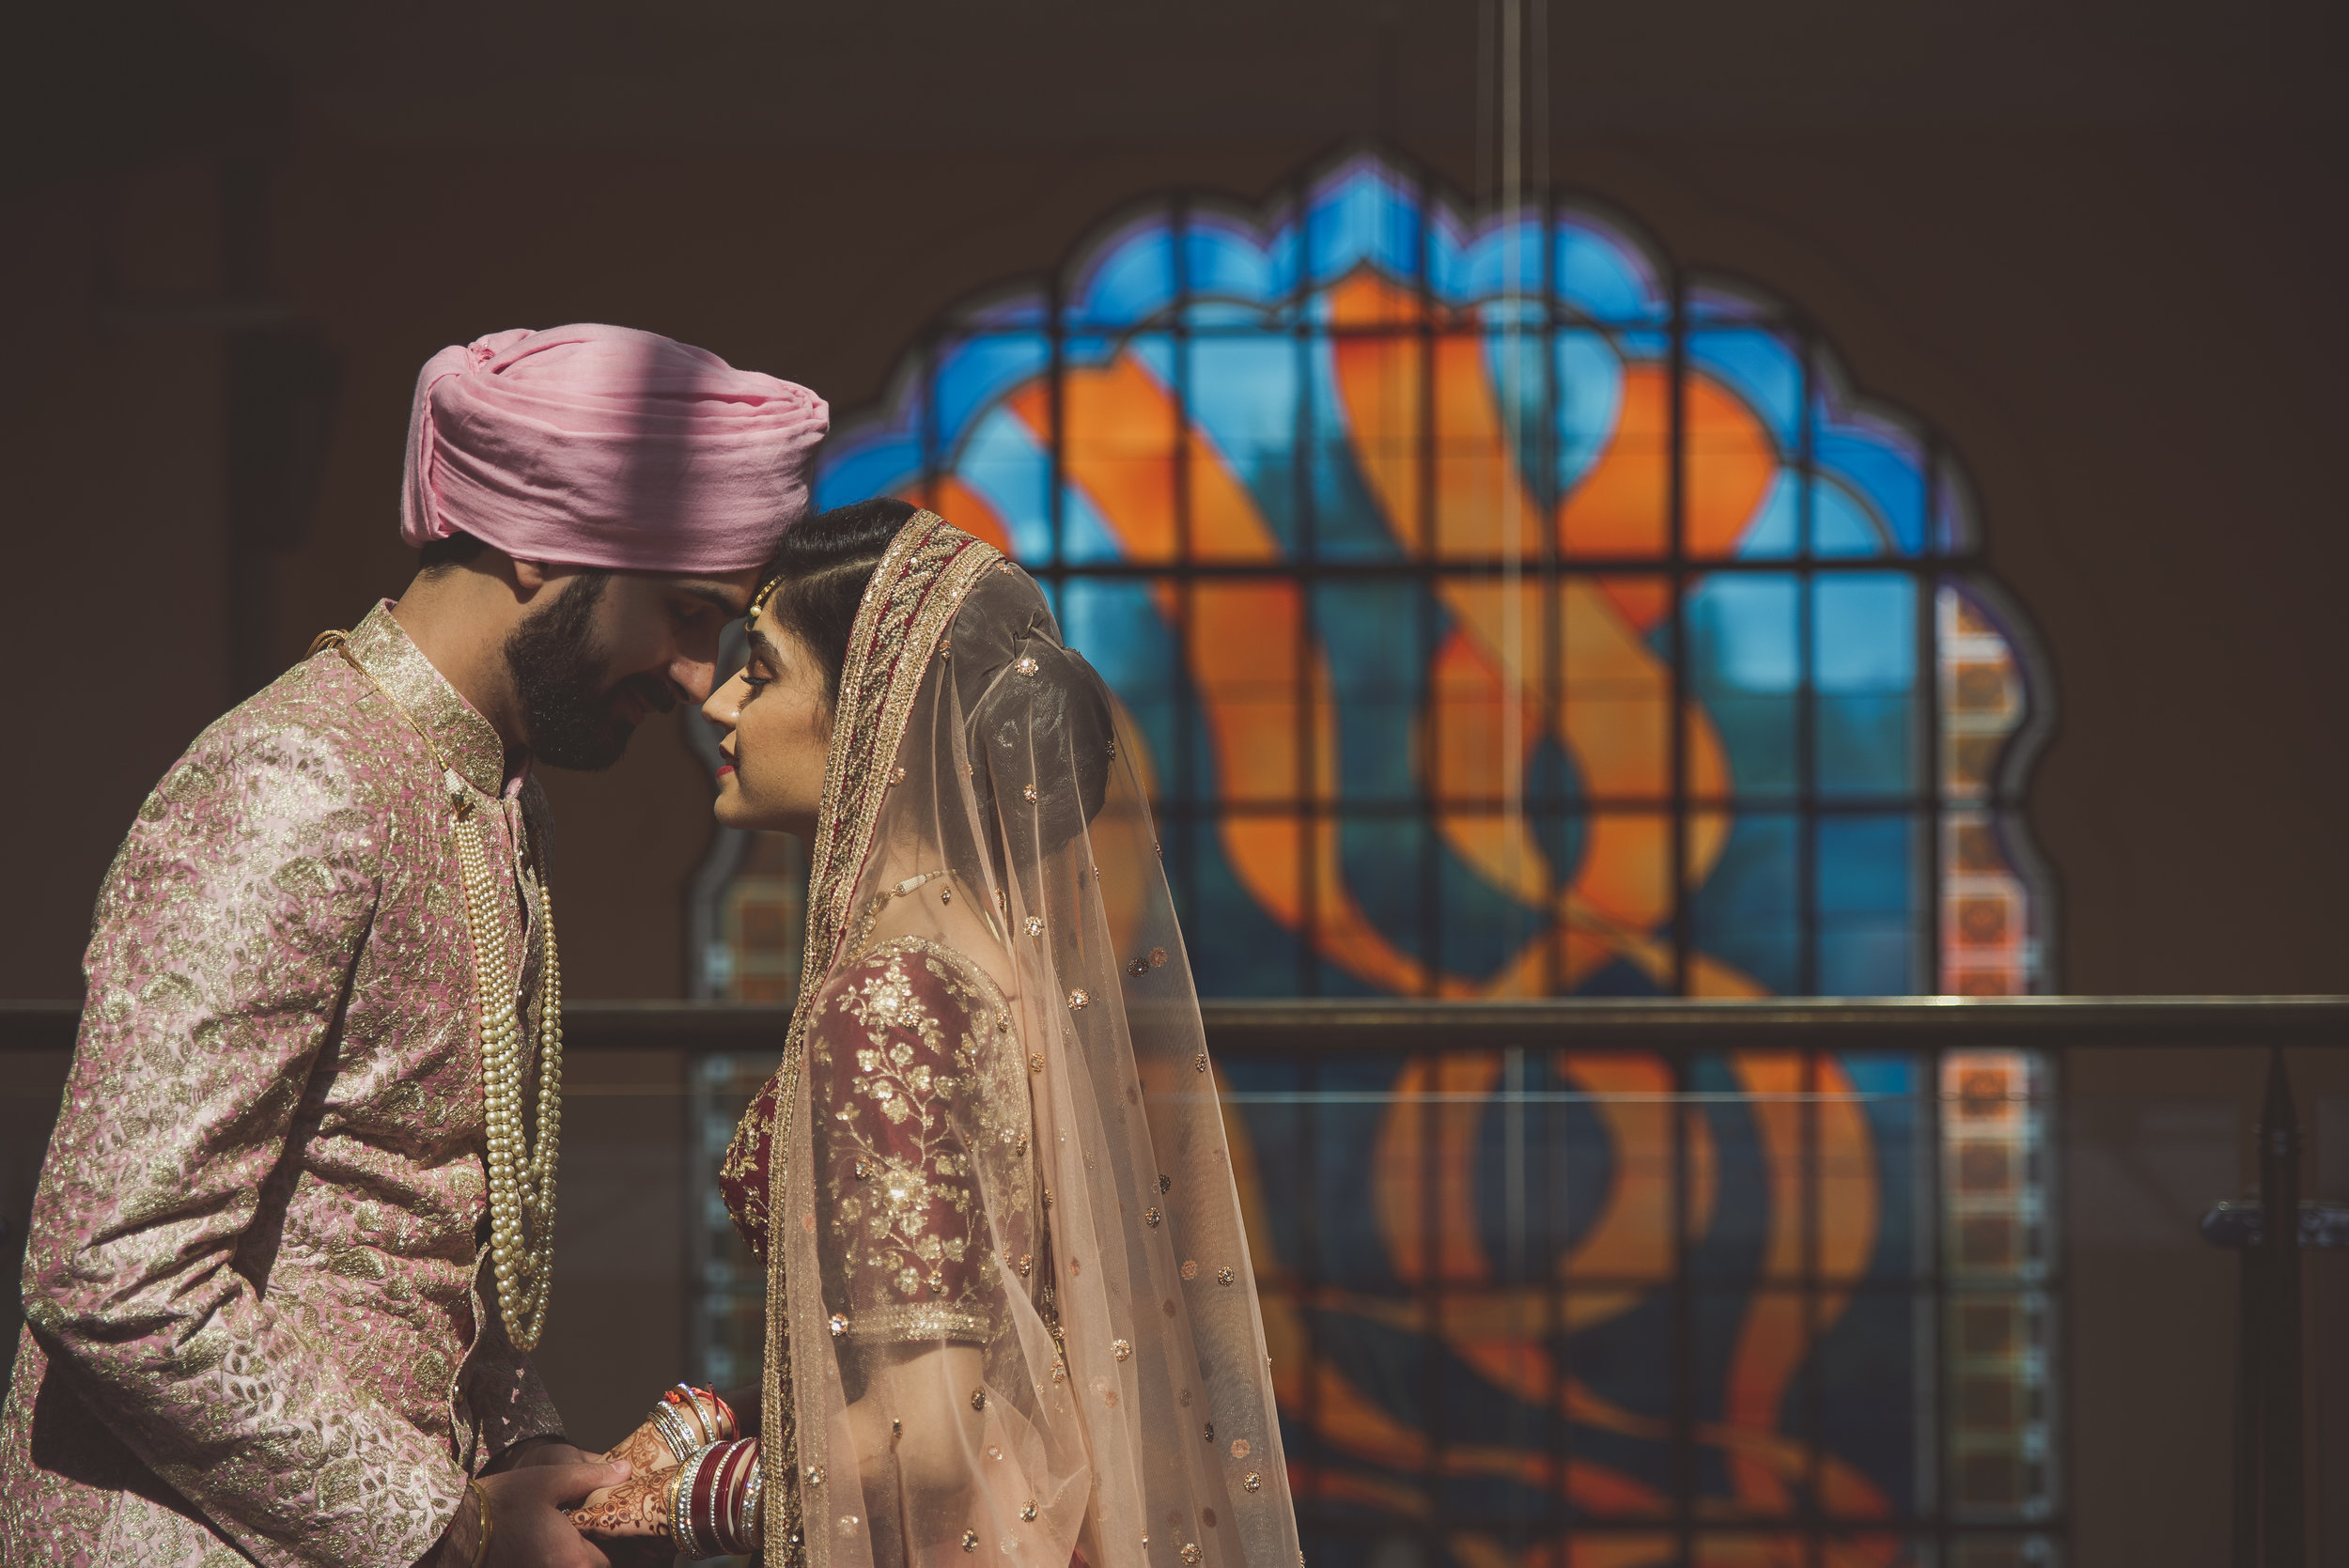 Sikh wedding photography, Hindu wedding photography